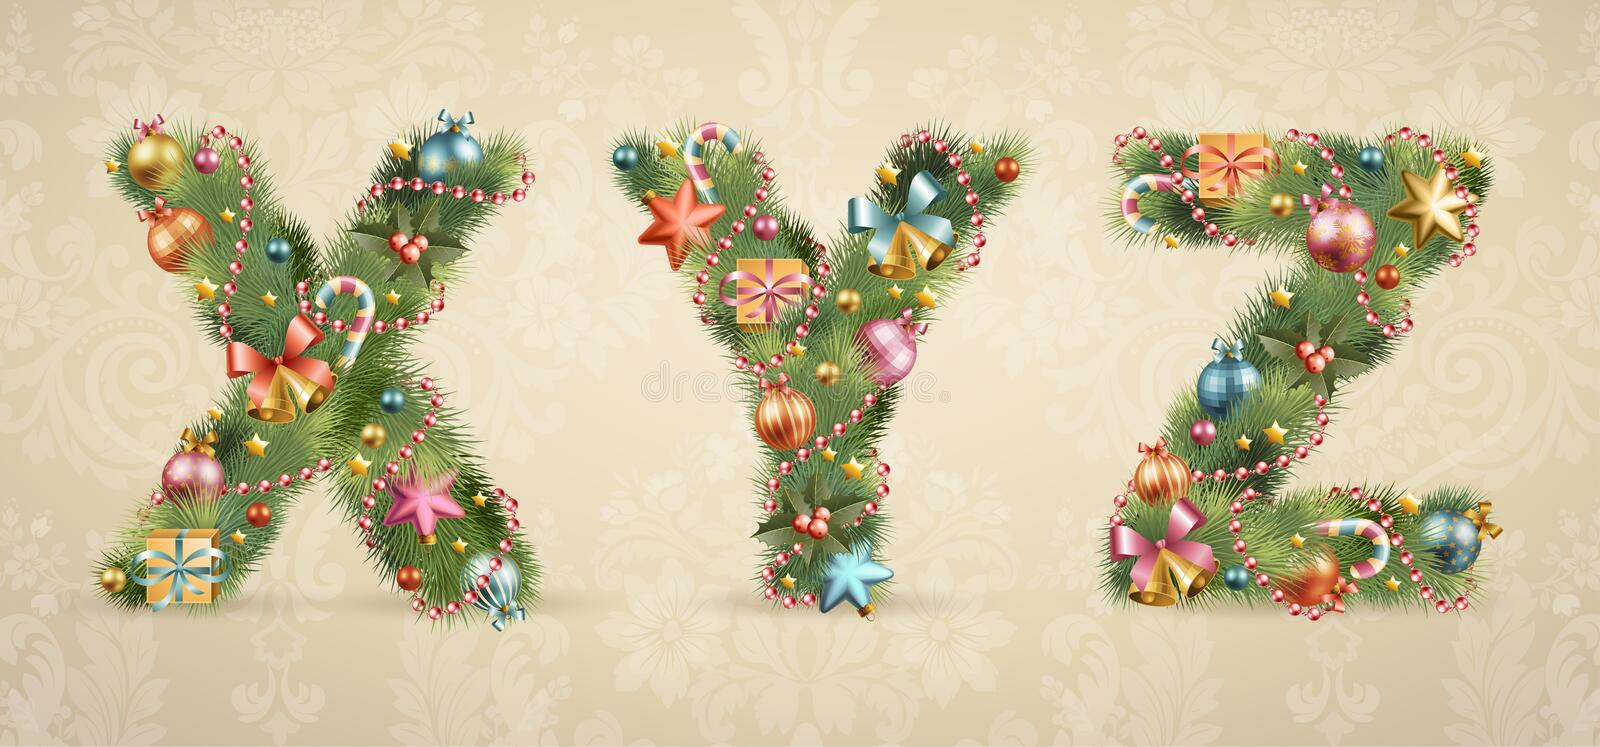 Christmas tree font with baubles. Vintage style. Vector illustration royalty free illustration